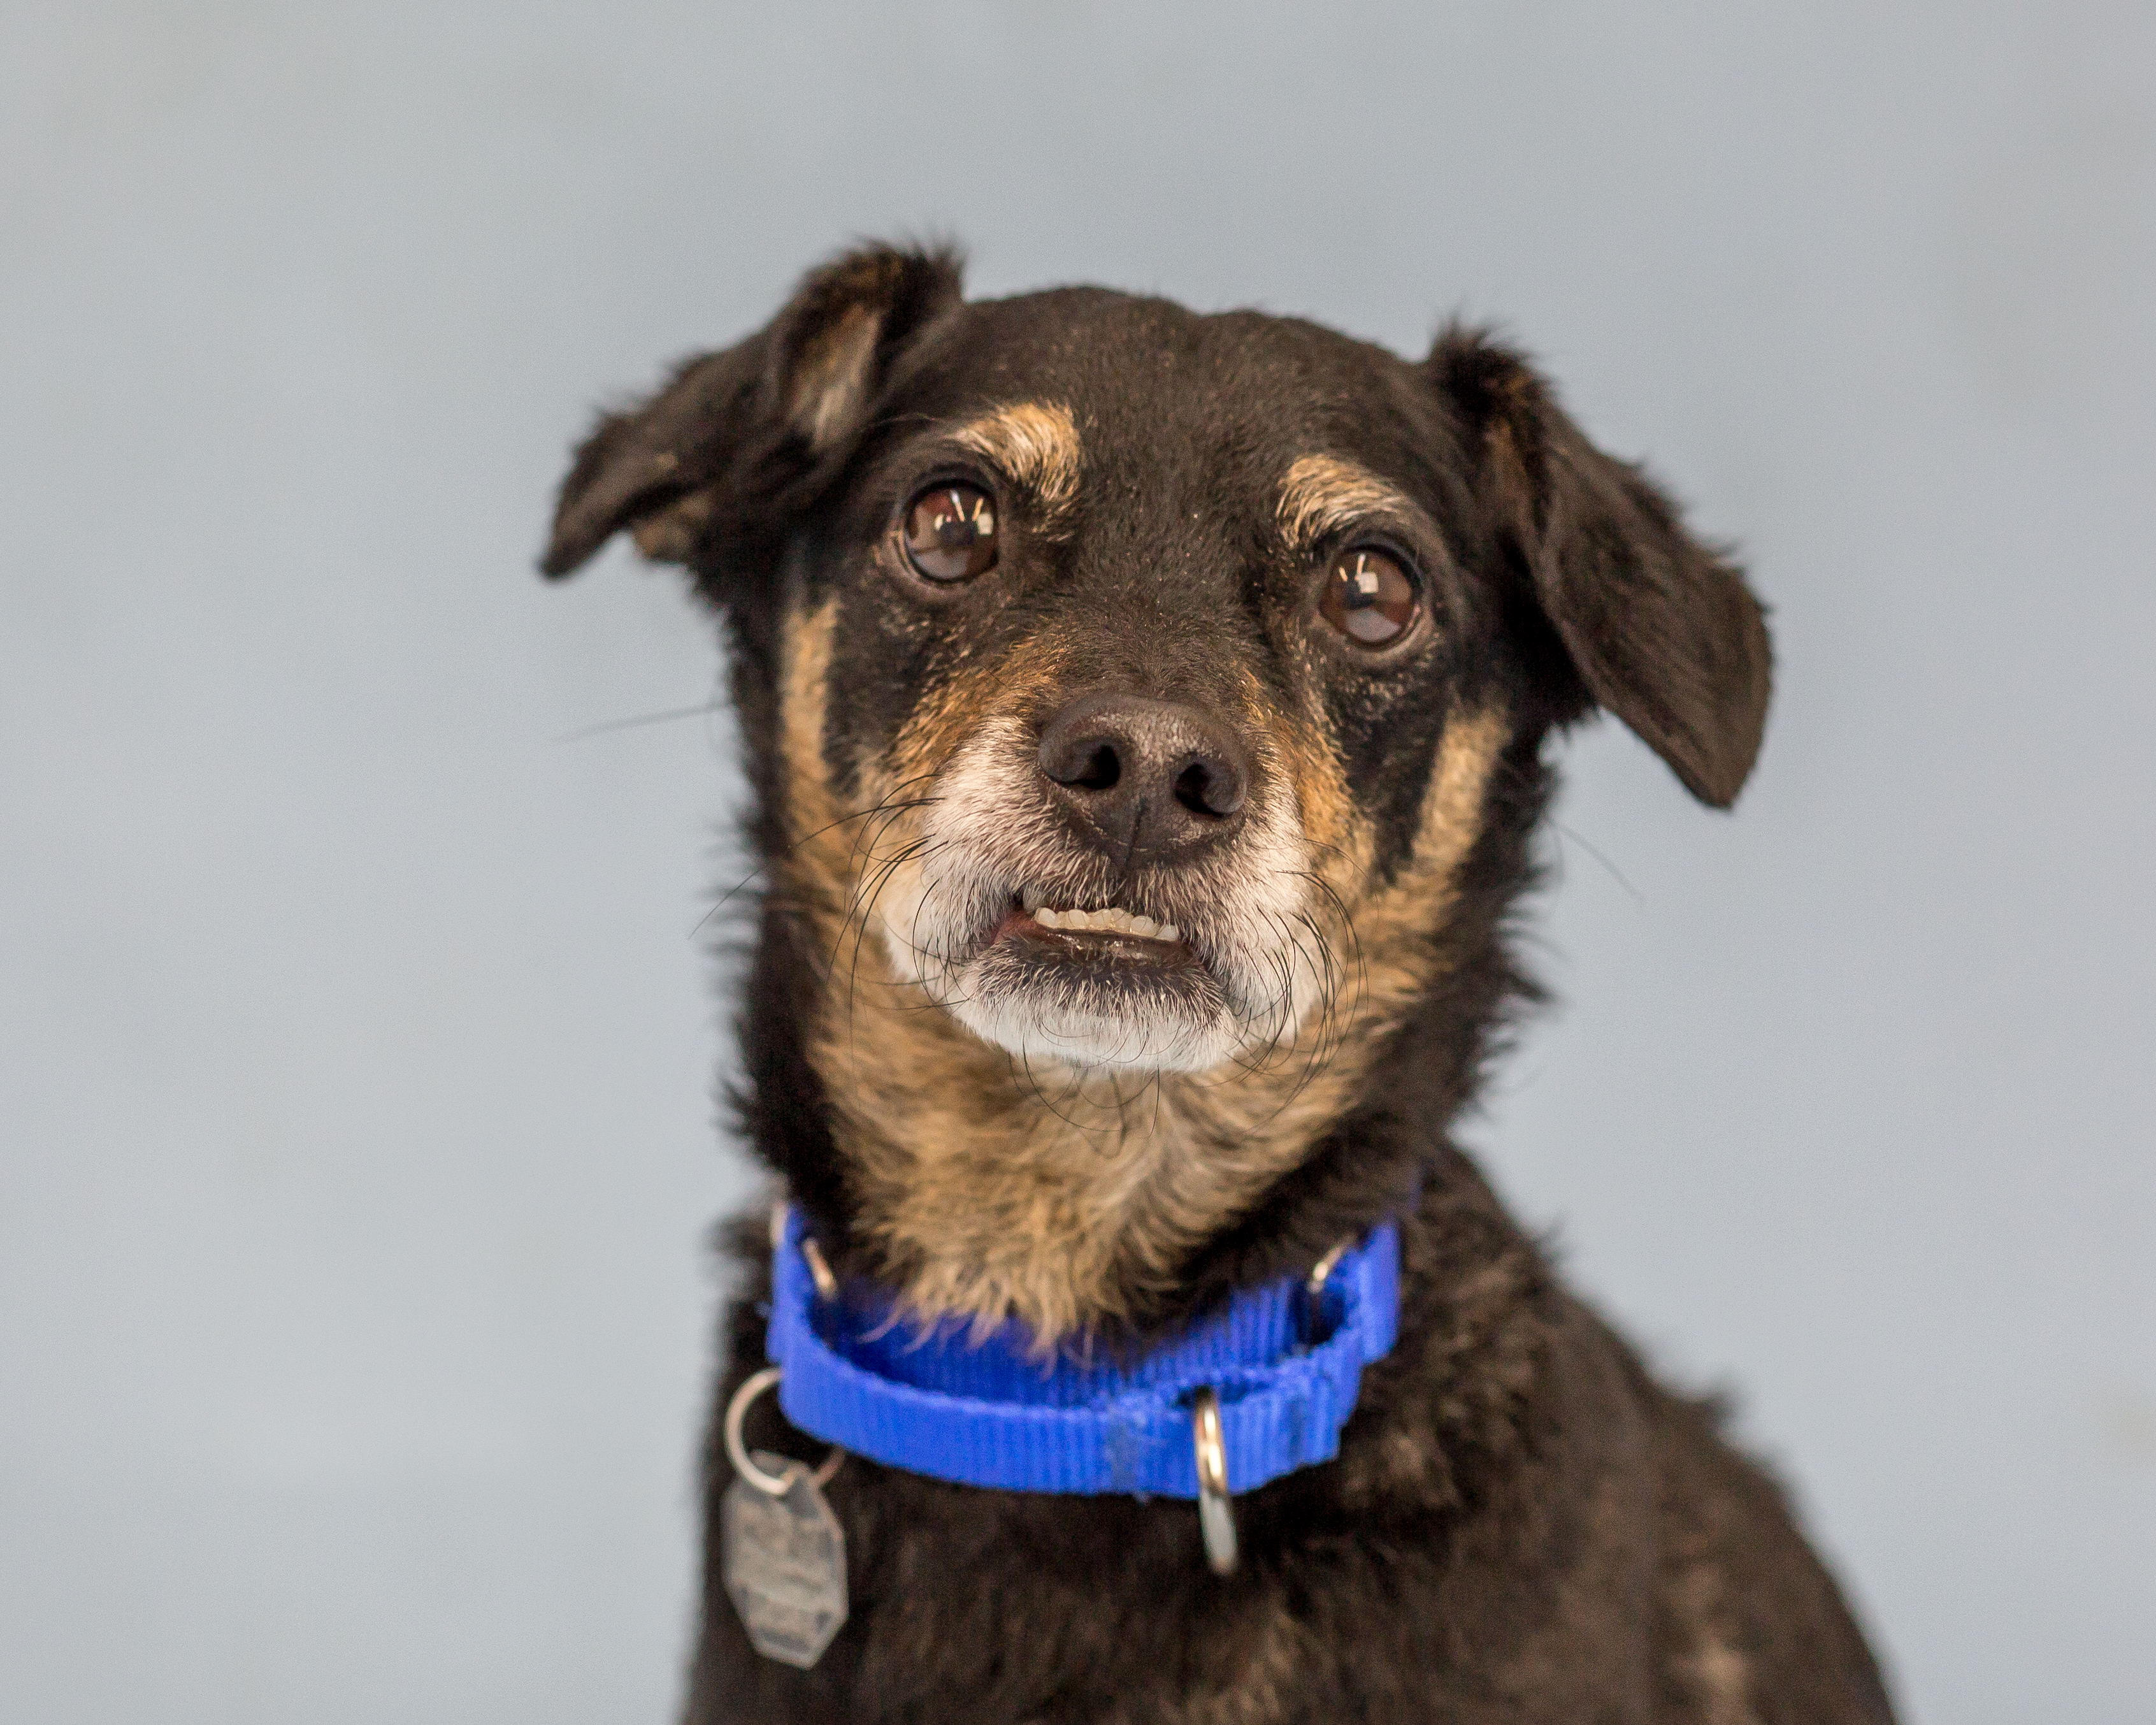 Greetings! My name is Oslo - I'm a delightful eight year old miniature pinscher dachshund mix waiting to meet you! I enjoy hanging out with my people and going for quiet, leisurely walks the most. I've done well with other dogs, and did I mention I enjoy having a good conversation? If you're looking for best friend material, I'm your guy! Older kids are more my style and I can't wait for a new adventure by your side.